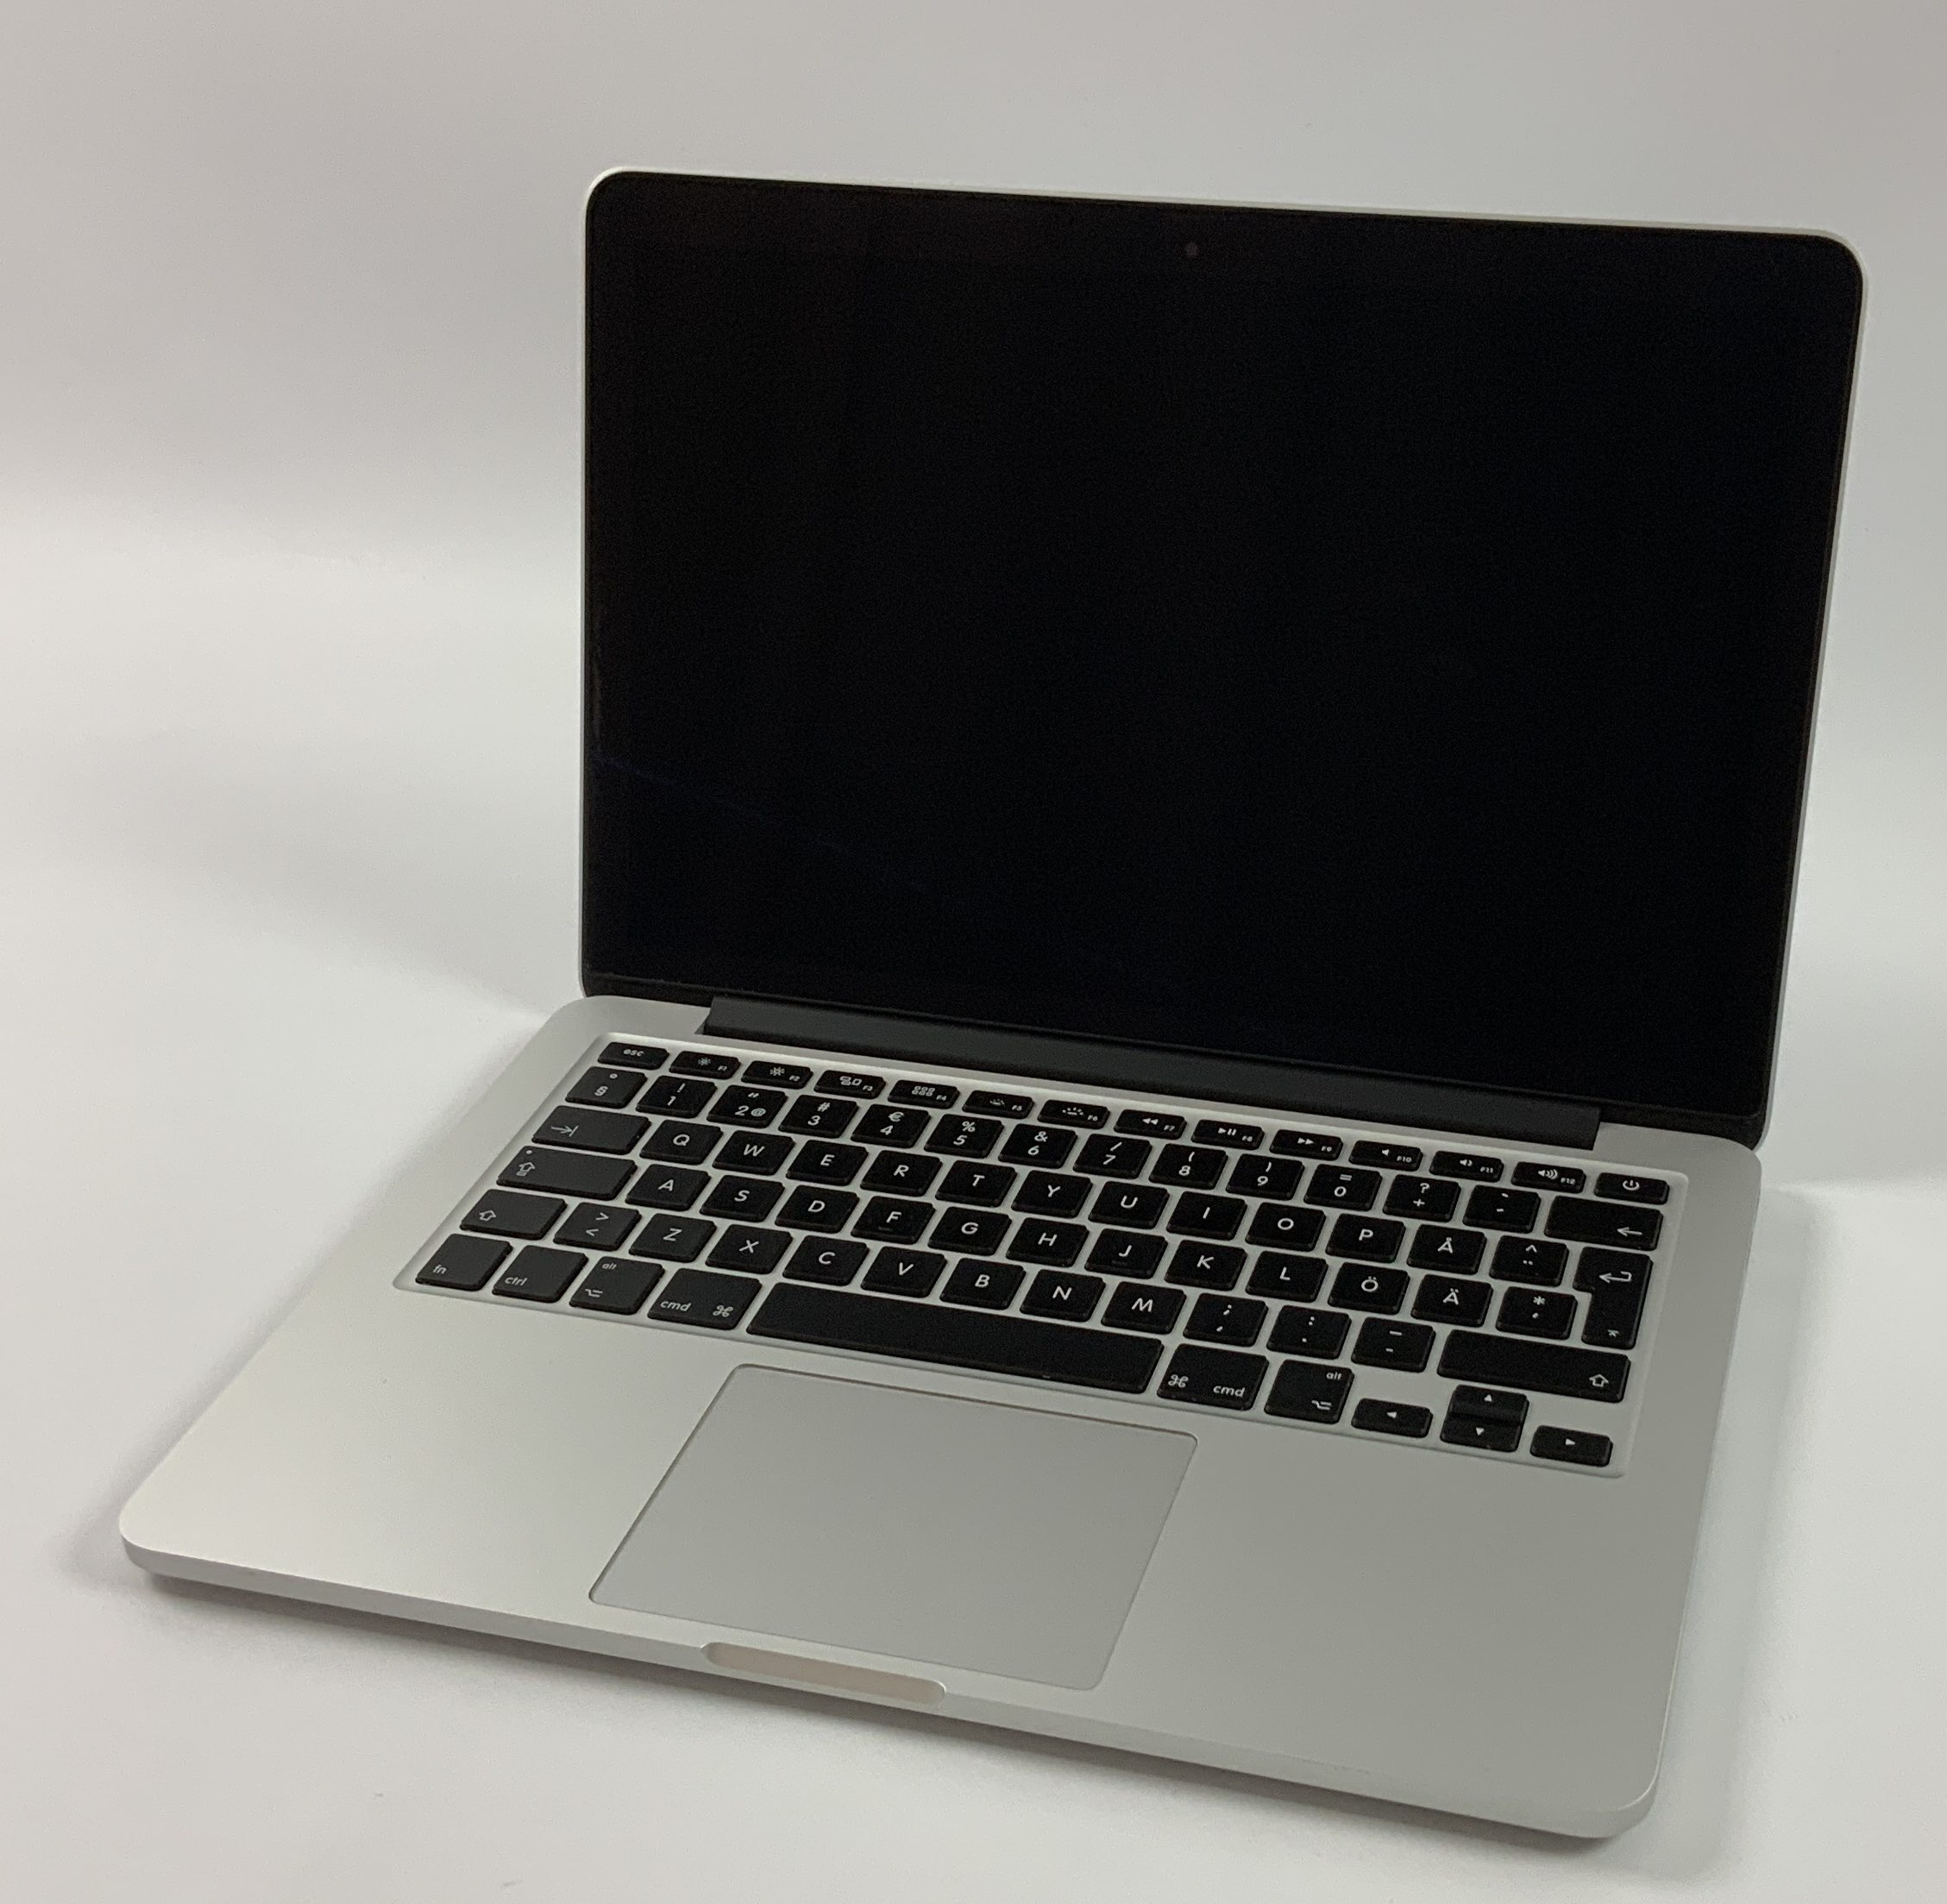 "MacBook Pro Retina 13"" Mid 2014 (Intel Core i5 2.6 GHz 8 GB RAM 128 GB SSD), Intel Core i5 2.6 GHz, 8 GB RAM, 128 GB SSD, bild 1"